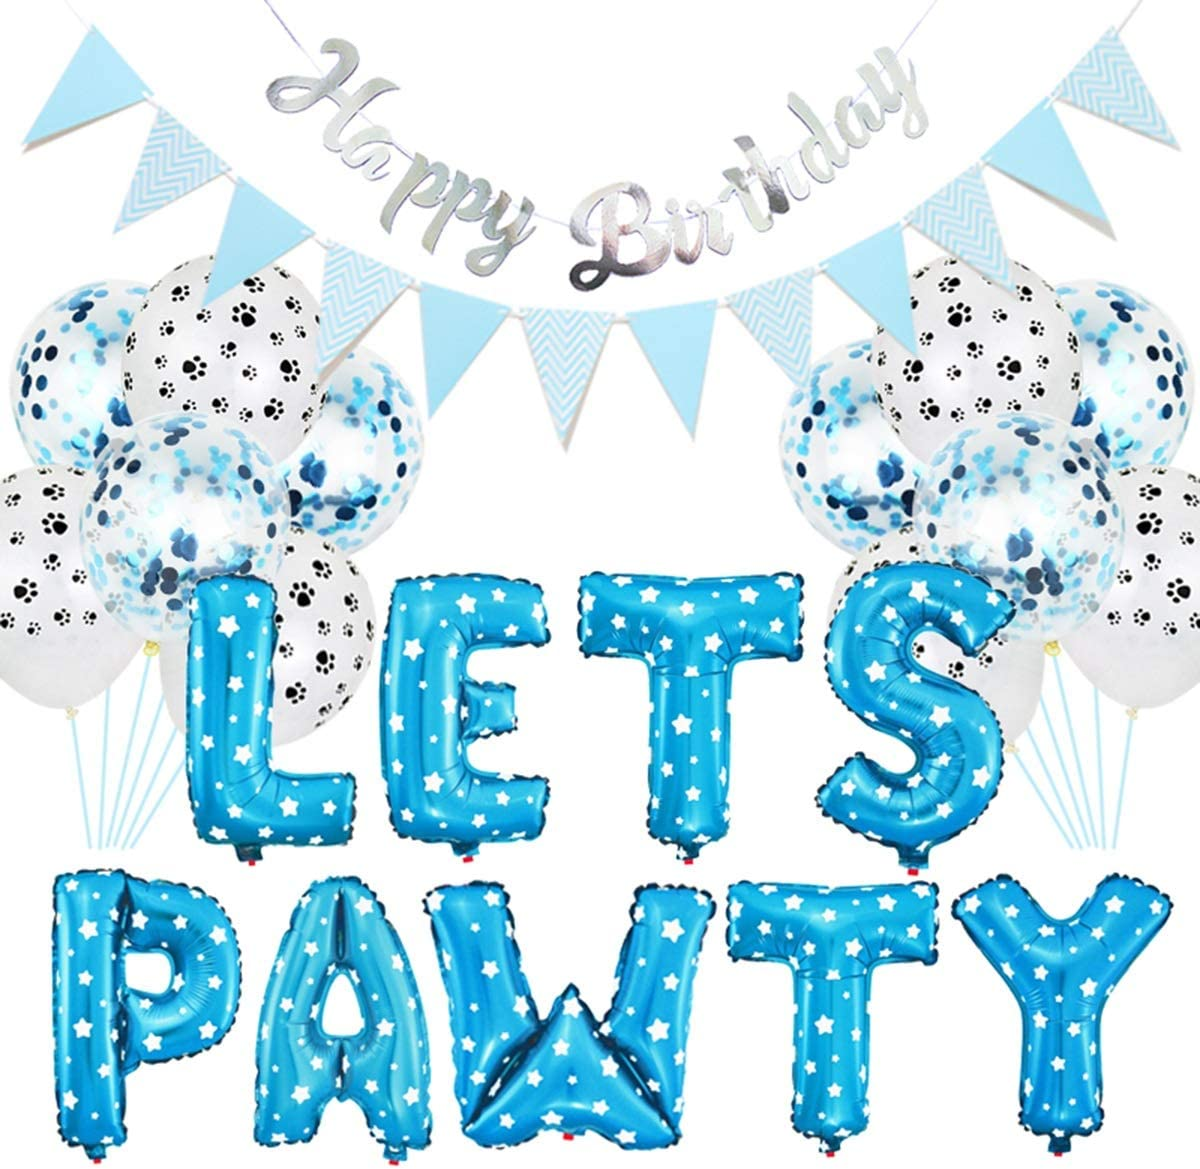 Haokaini Lets PAWTY Decor for Dog Cat, 23Pcs/Set Party Decor Kits, Balloons Birthday Banners Party Supplies for Dog Cat Pets Supplies